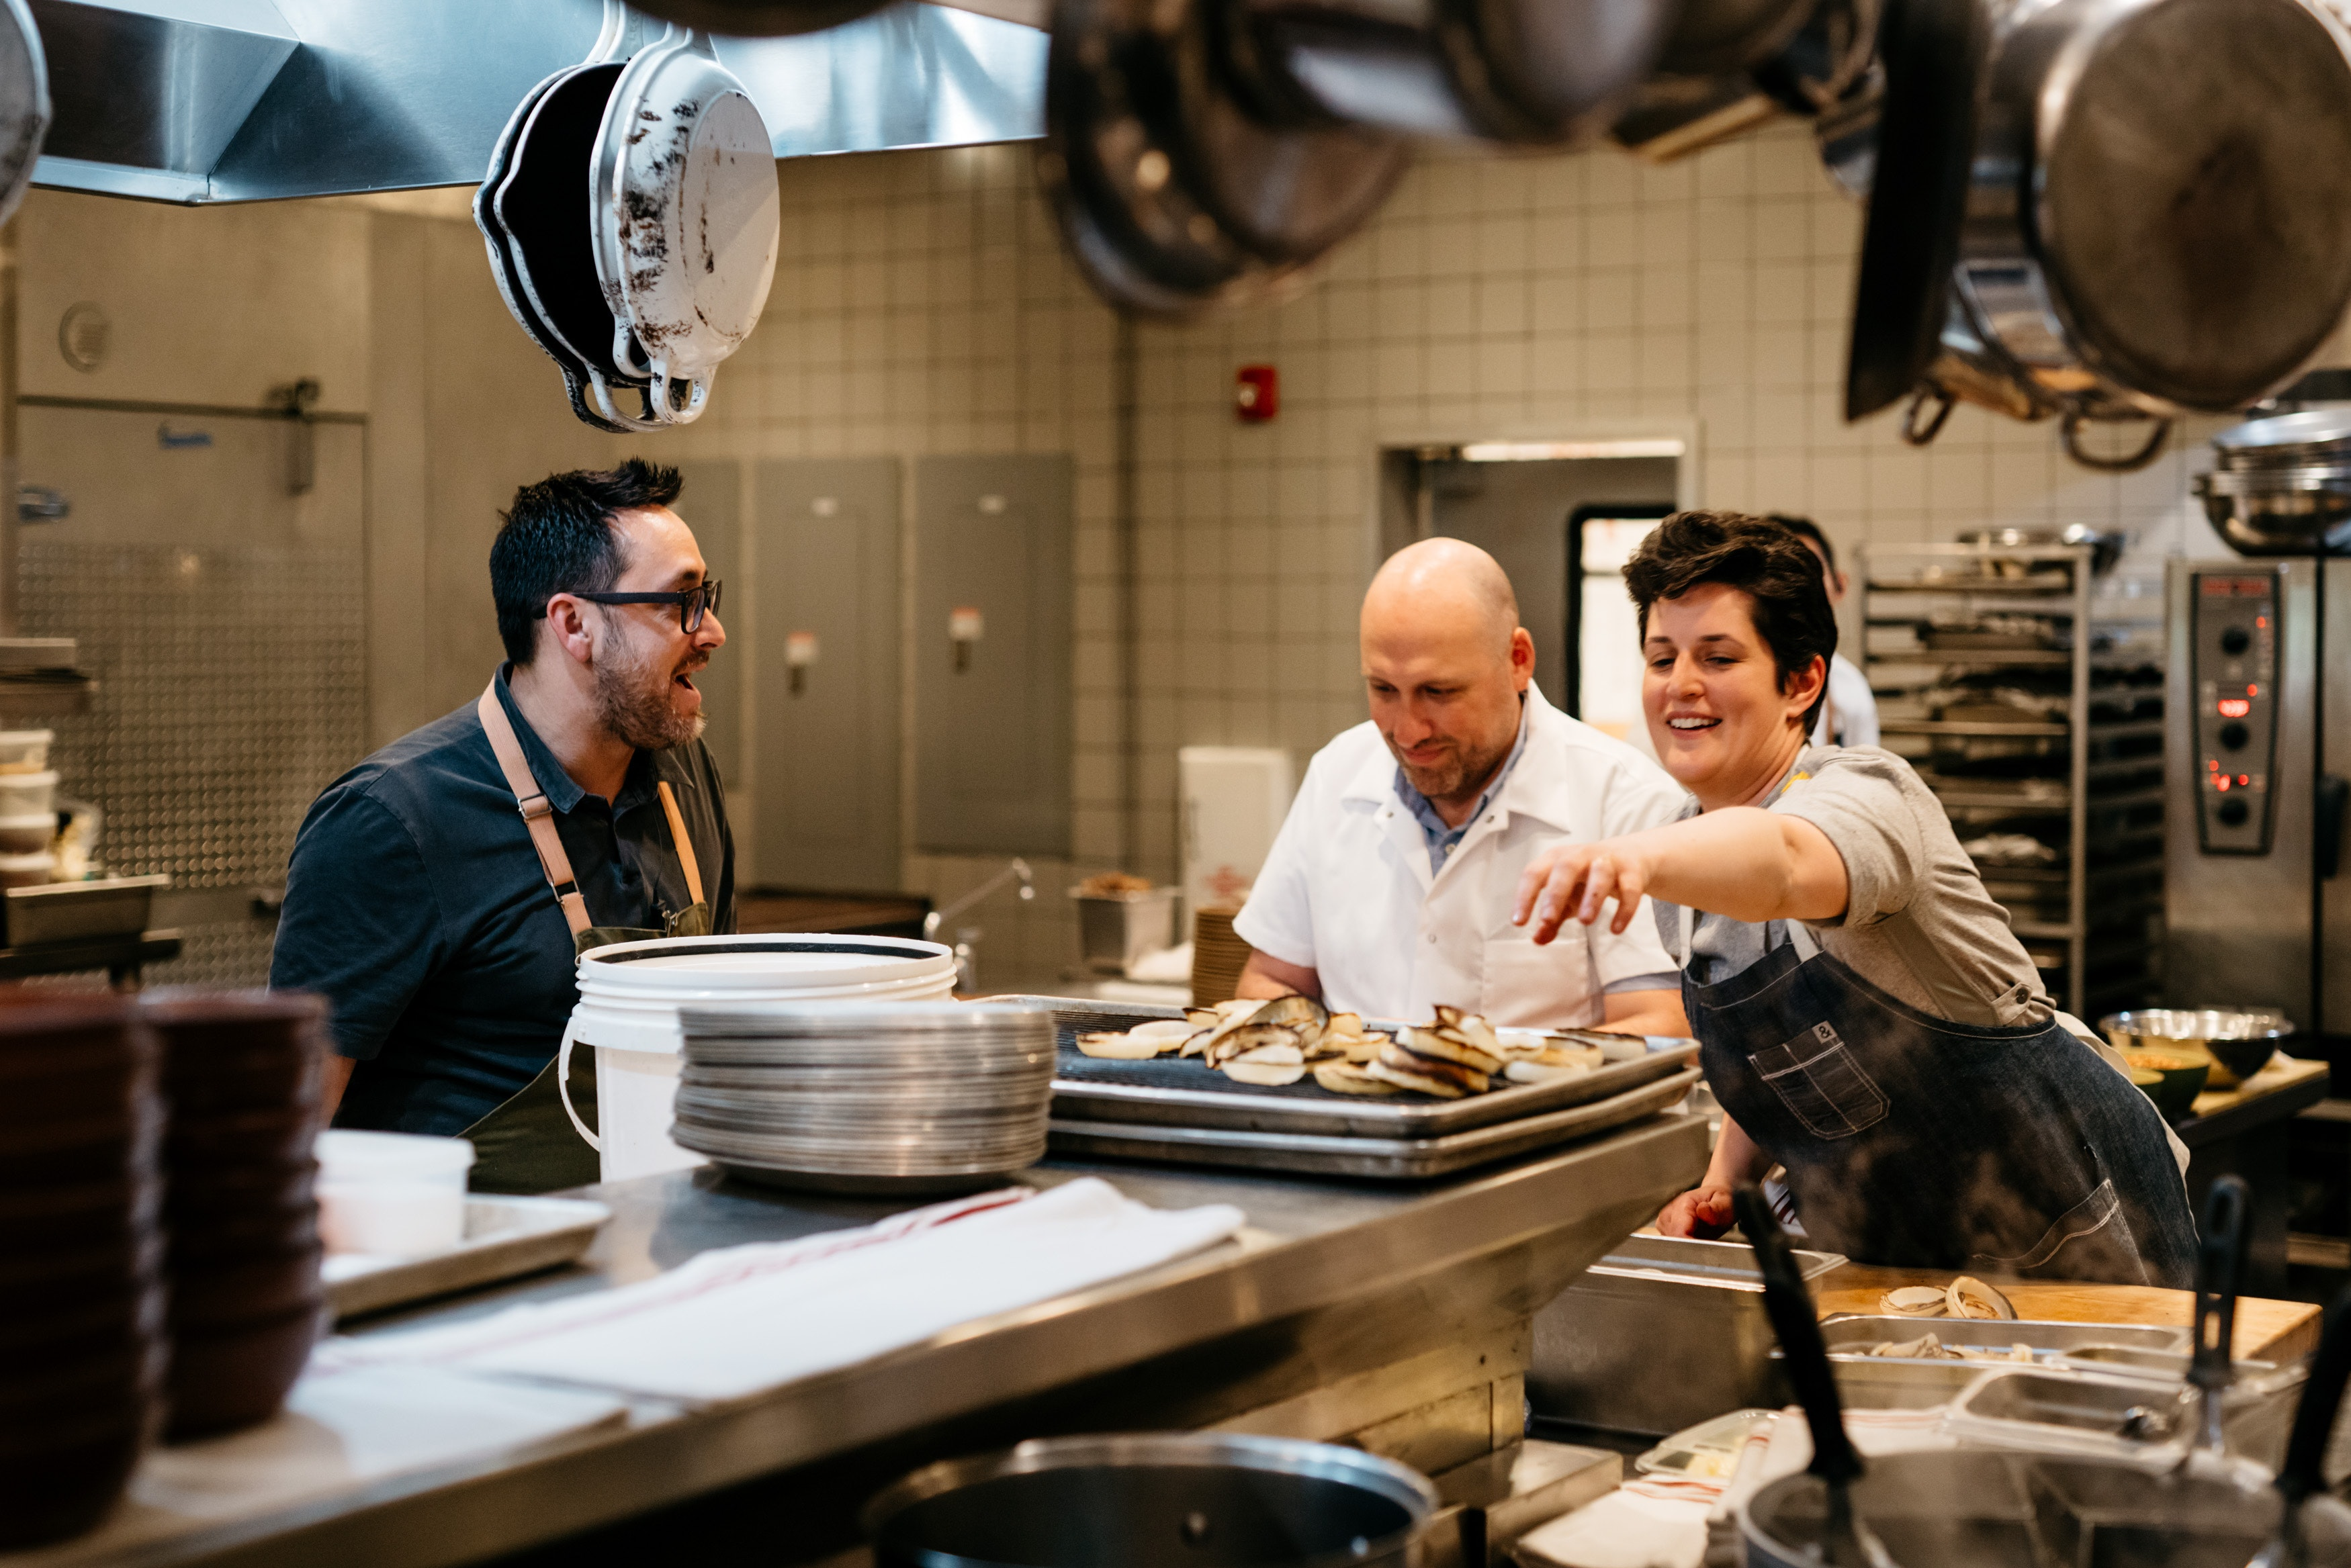 Chefs Christopher Kostow, Greg Denton, and Bonnie Morales were among those who cooked during a recent Guest Chef Potluck event at The Charter Oak.